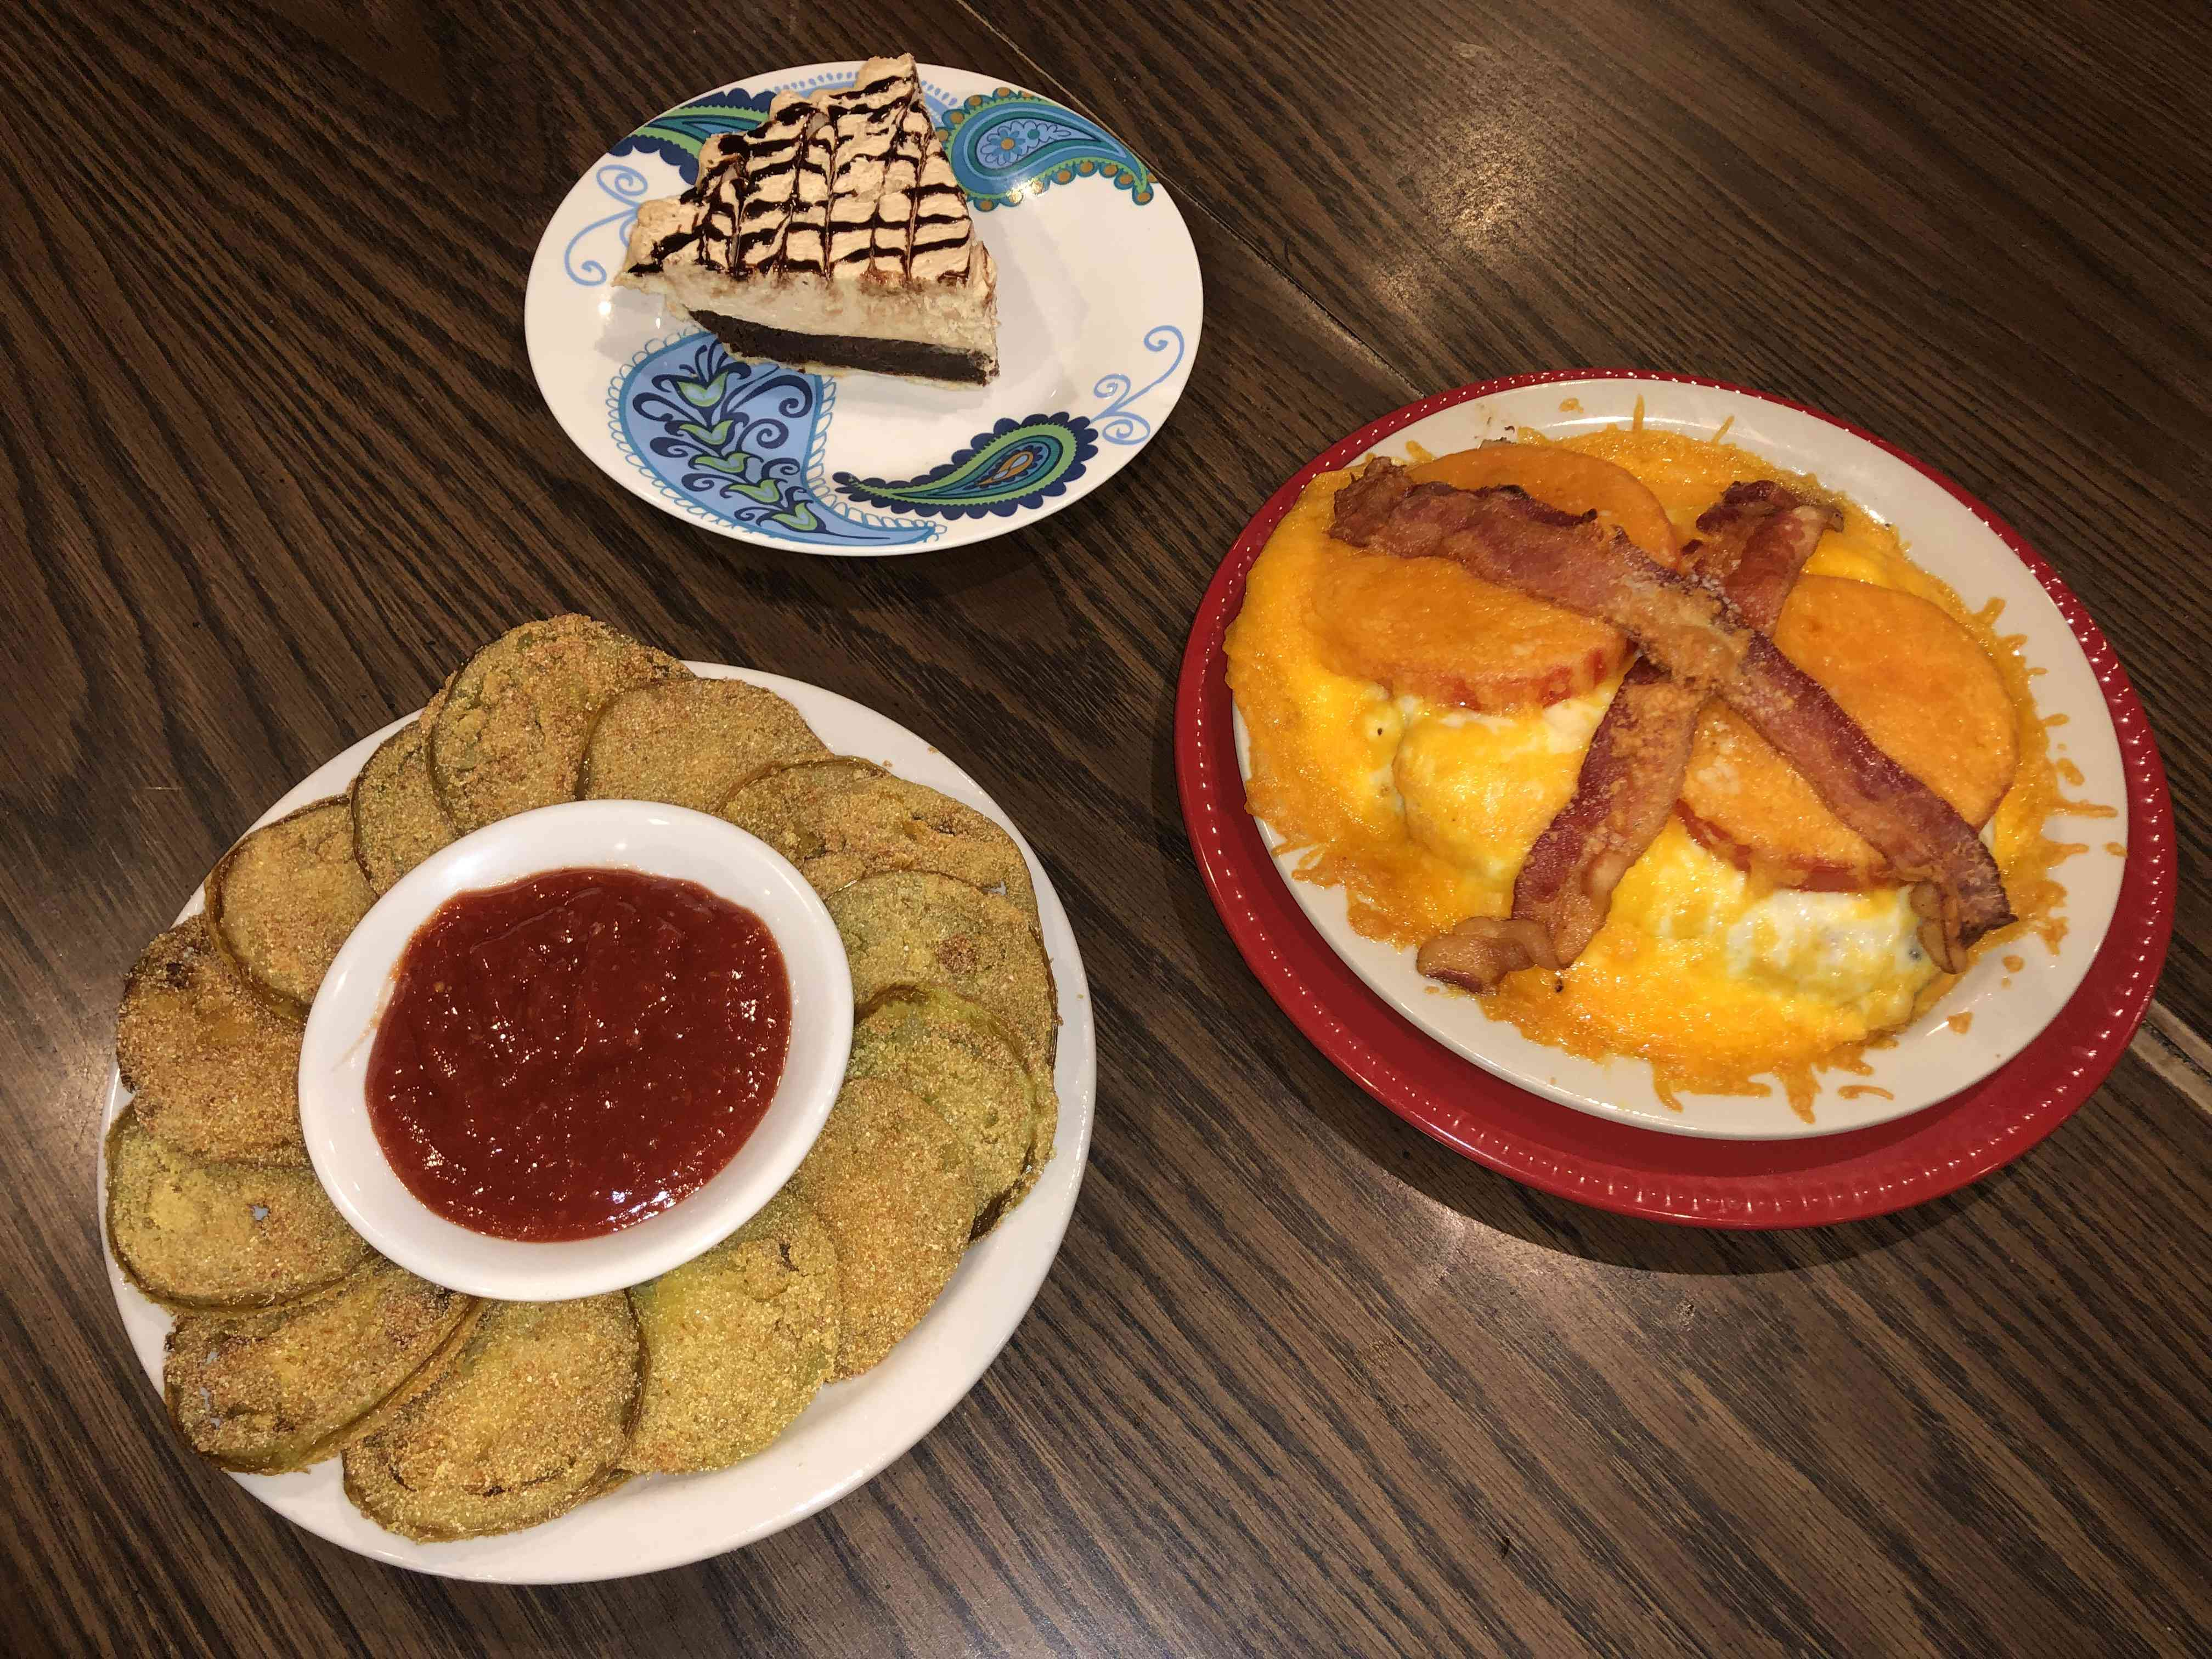 Southern cuisine on a table at Ramsey's Diner in Lexington